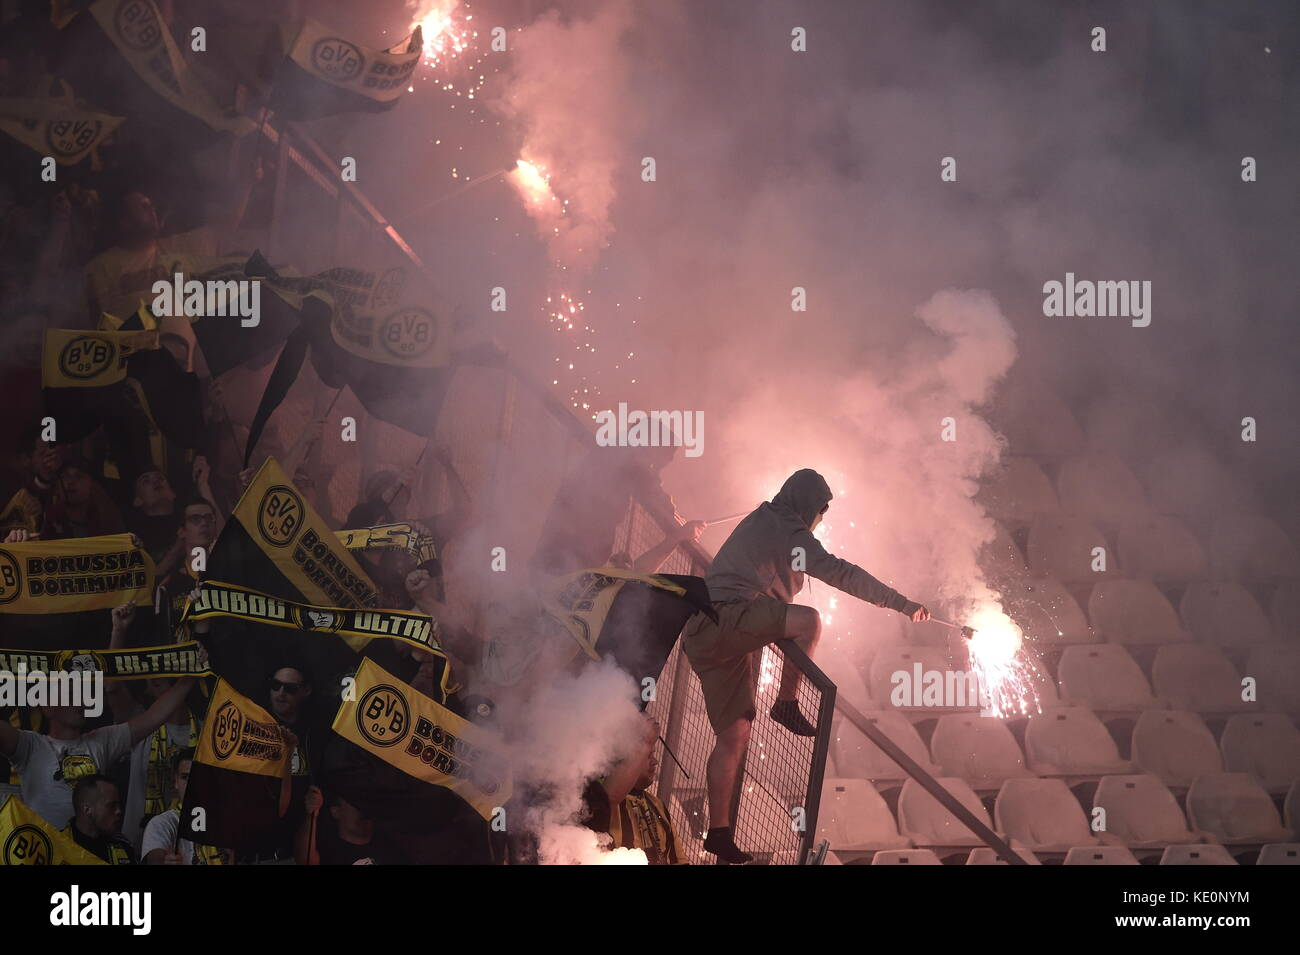 Nicosia, Cyprus. 17th Oct, 2017. Dortmund fans light fireworks in the stands during the Champions League group stages - Stock Image